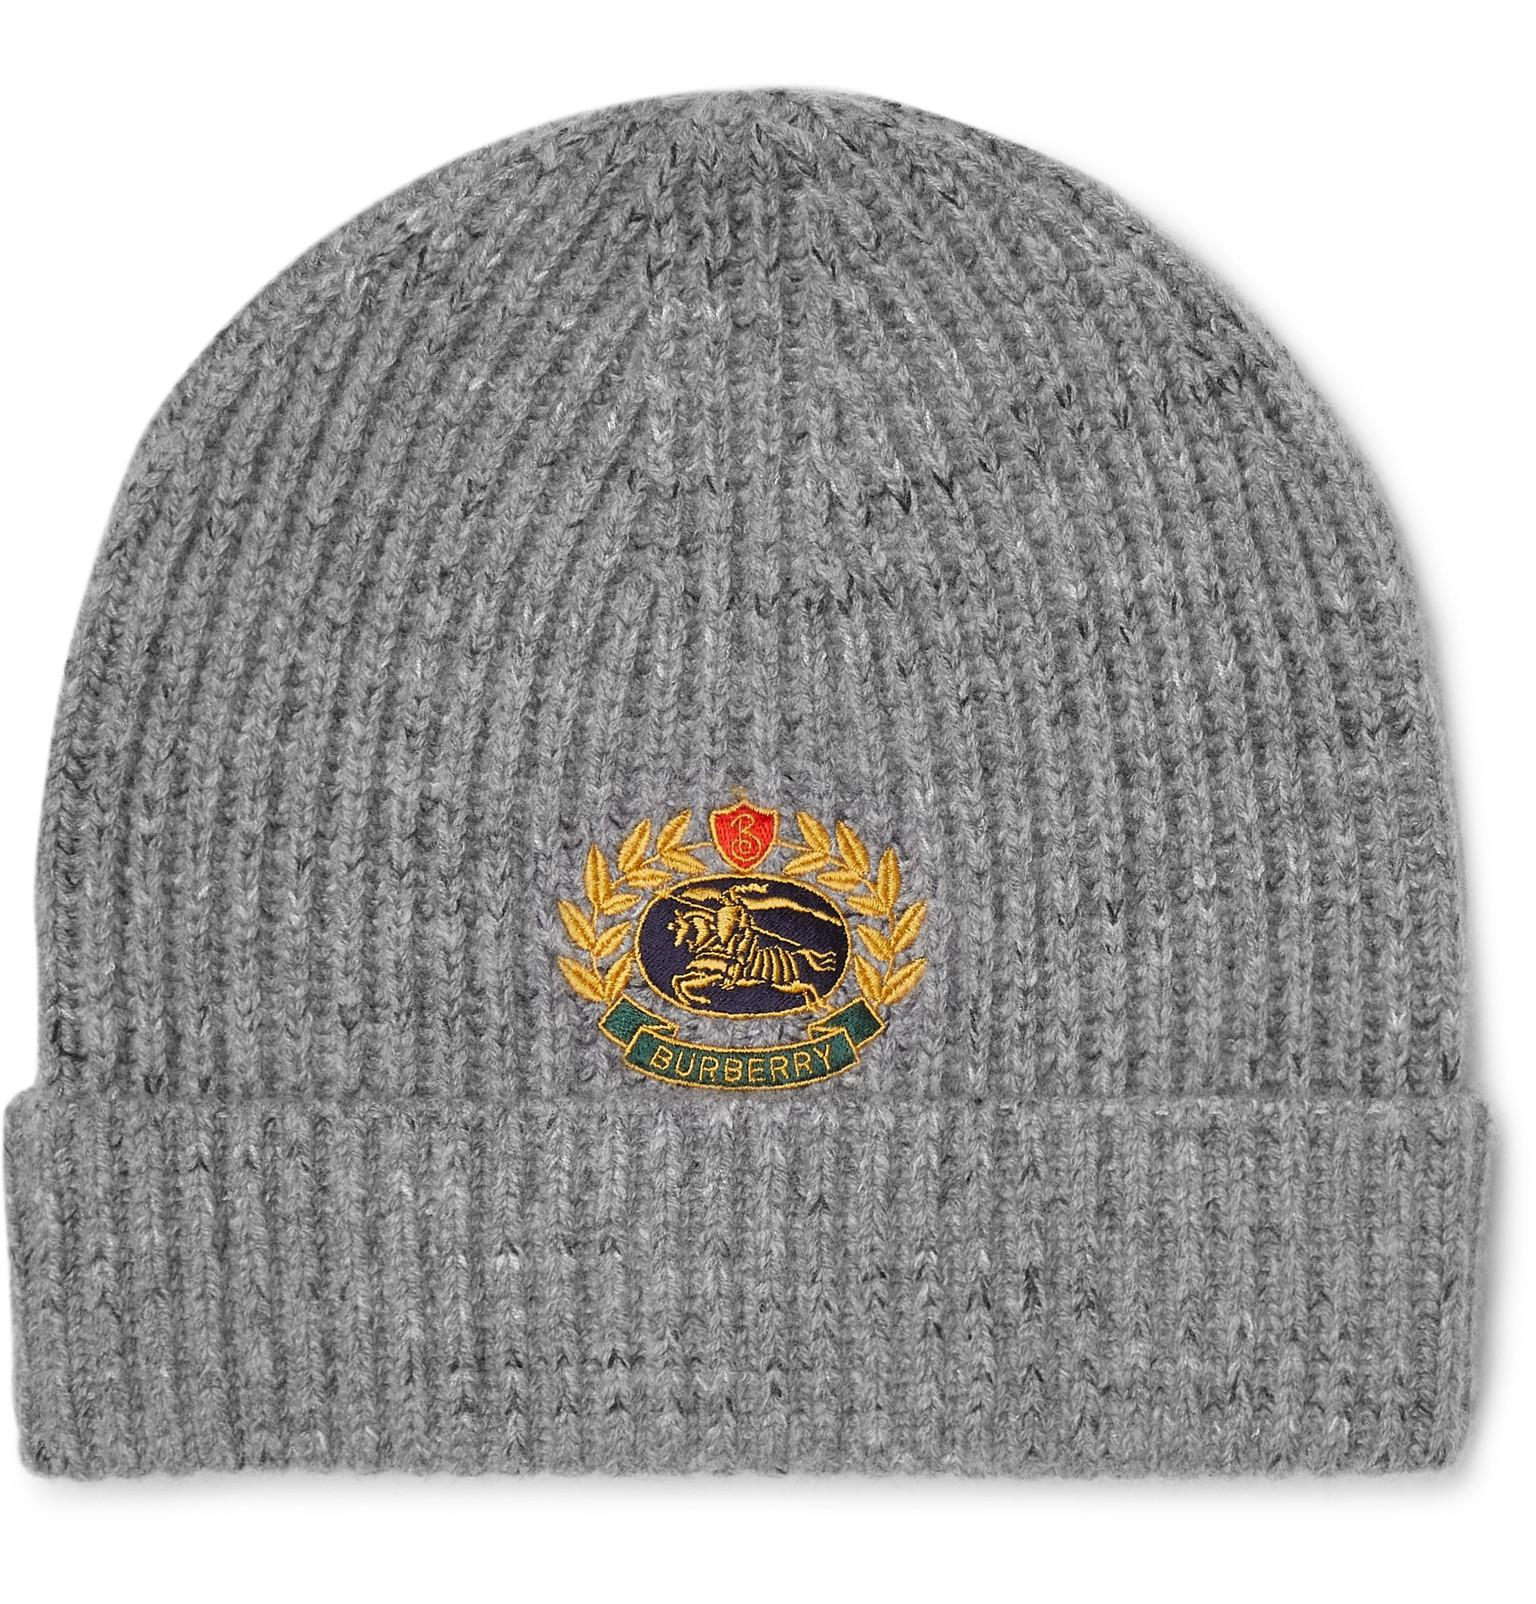 7126a52354f Burberry - Gray Logo Embroidered Wool Blend Beanie Hat for Men - Lyst. View  fullscreen